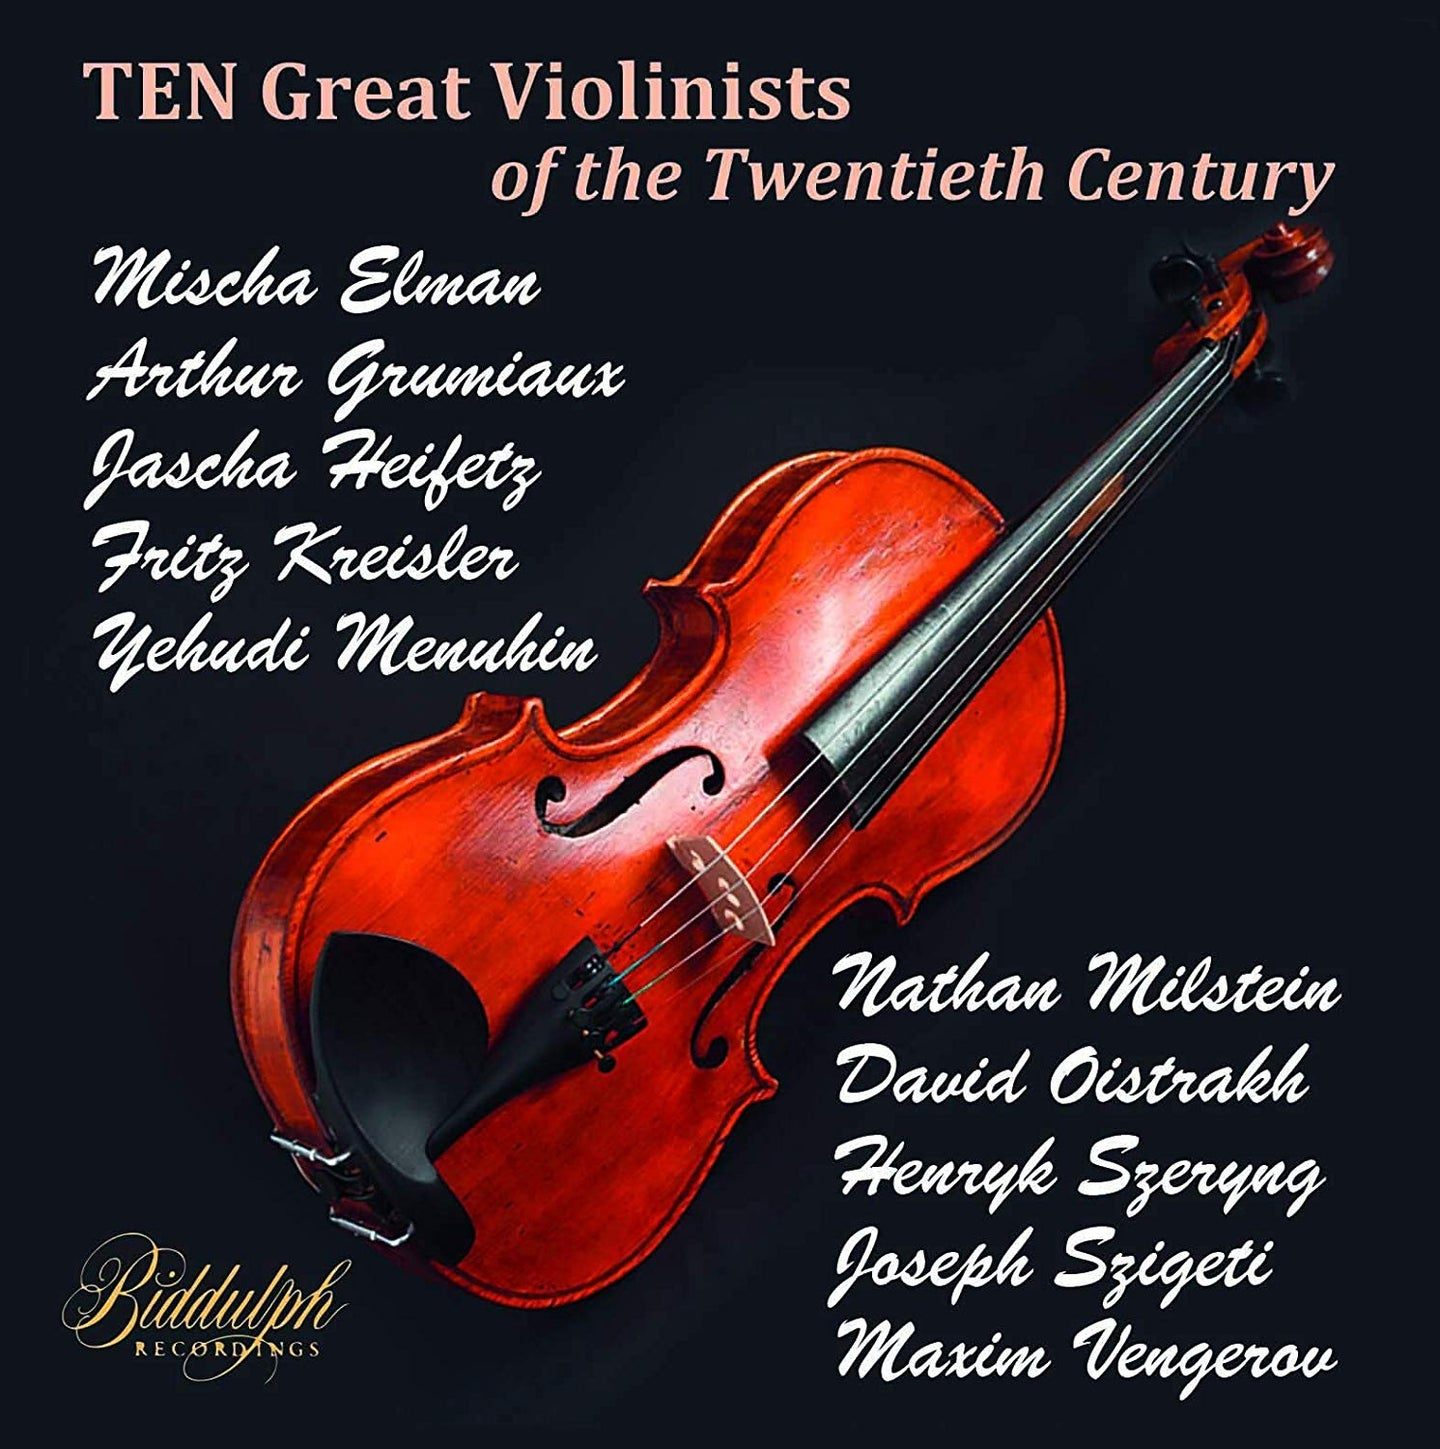 TEN GREAT VIOLINISTS OF THE 20TH CENTURY (10 CDS)